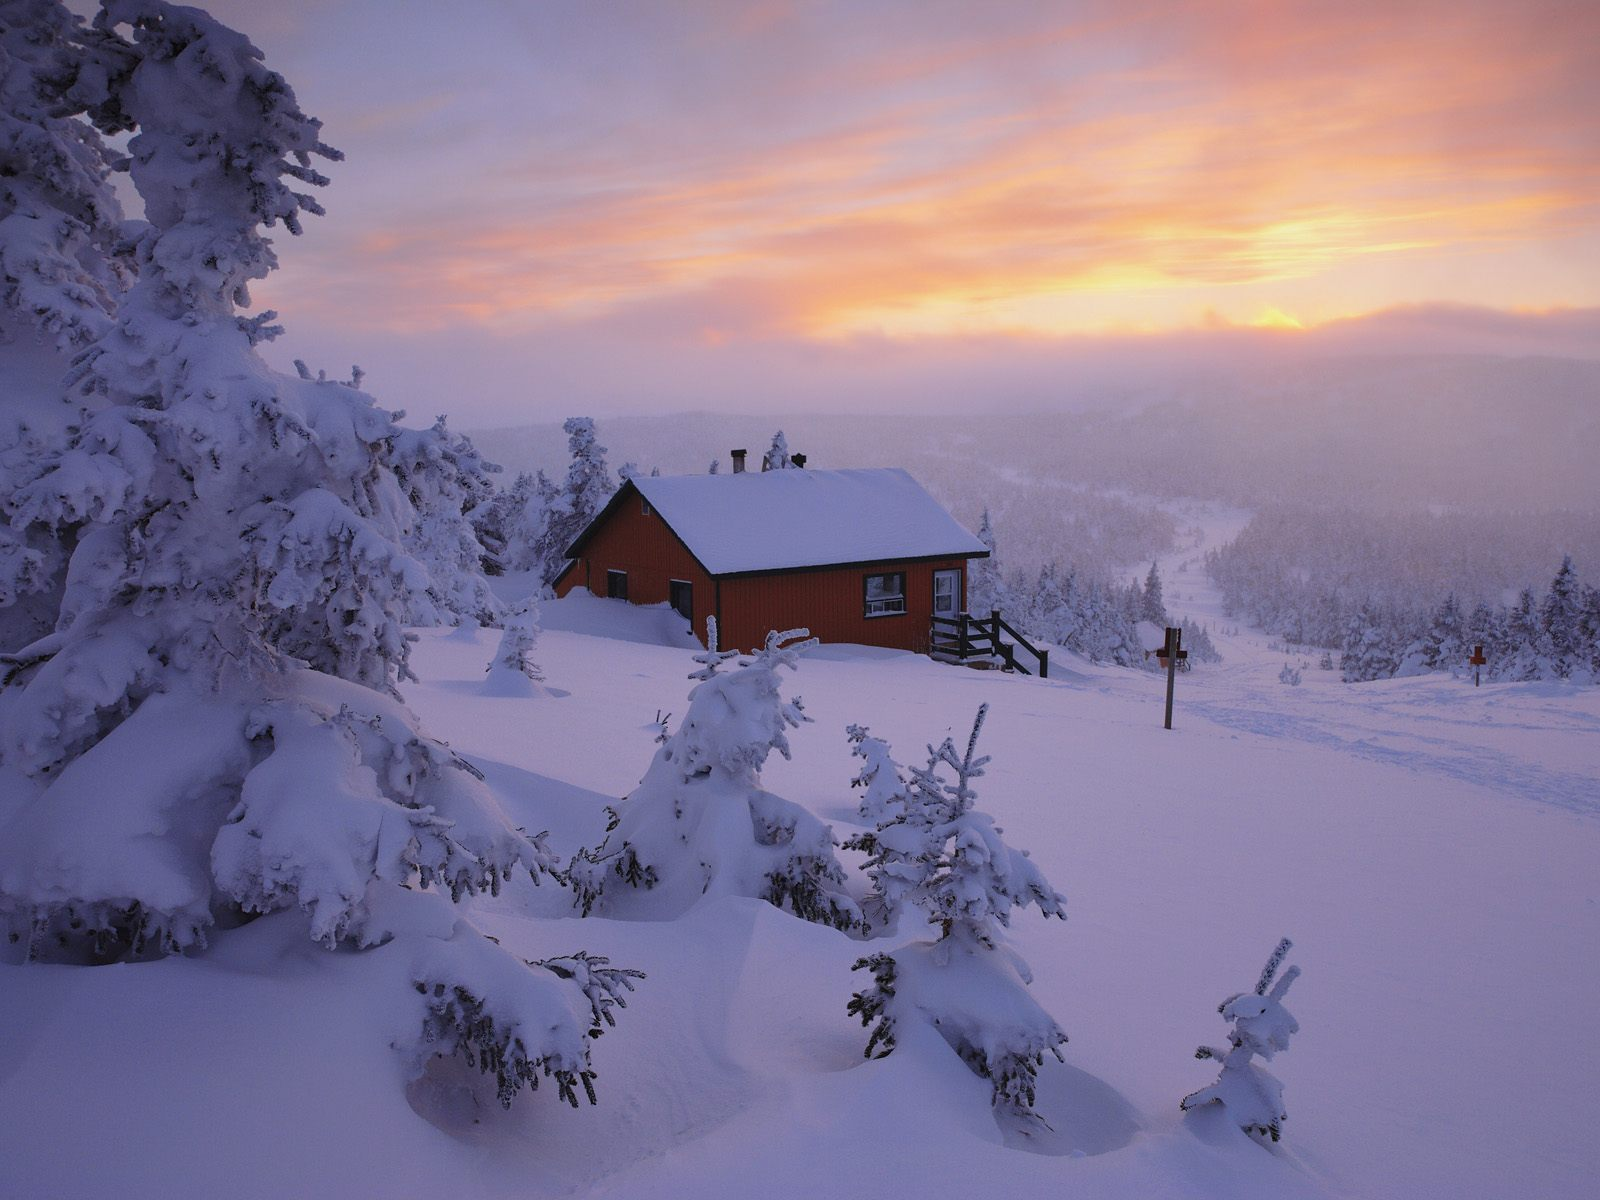 Winter computer wallpapers desktop backgrounds - Desktop wallpaper 1600x1200 ...